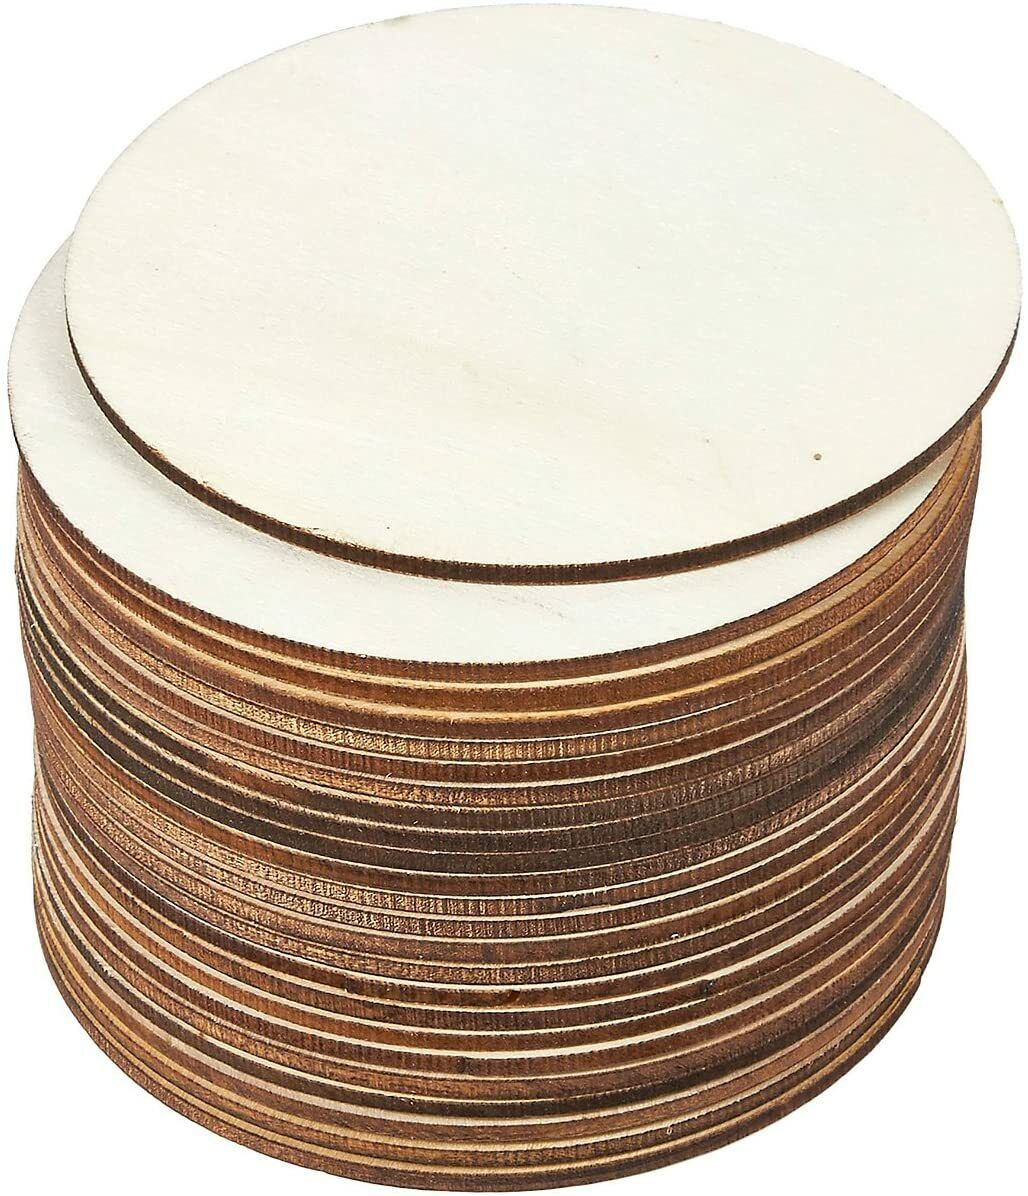 25 Wooden Plain Round Craft Circles 6mm Plywood Unfinished Cutout wood coins Crafting Pieces